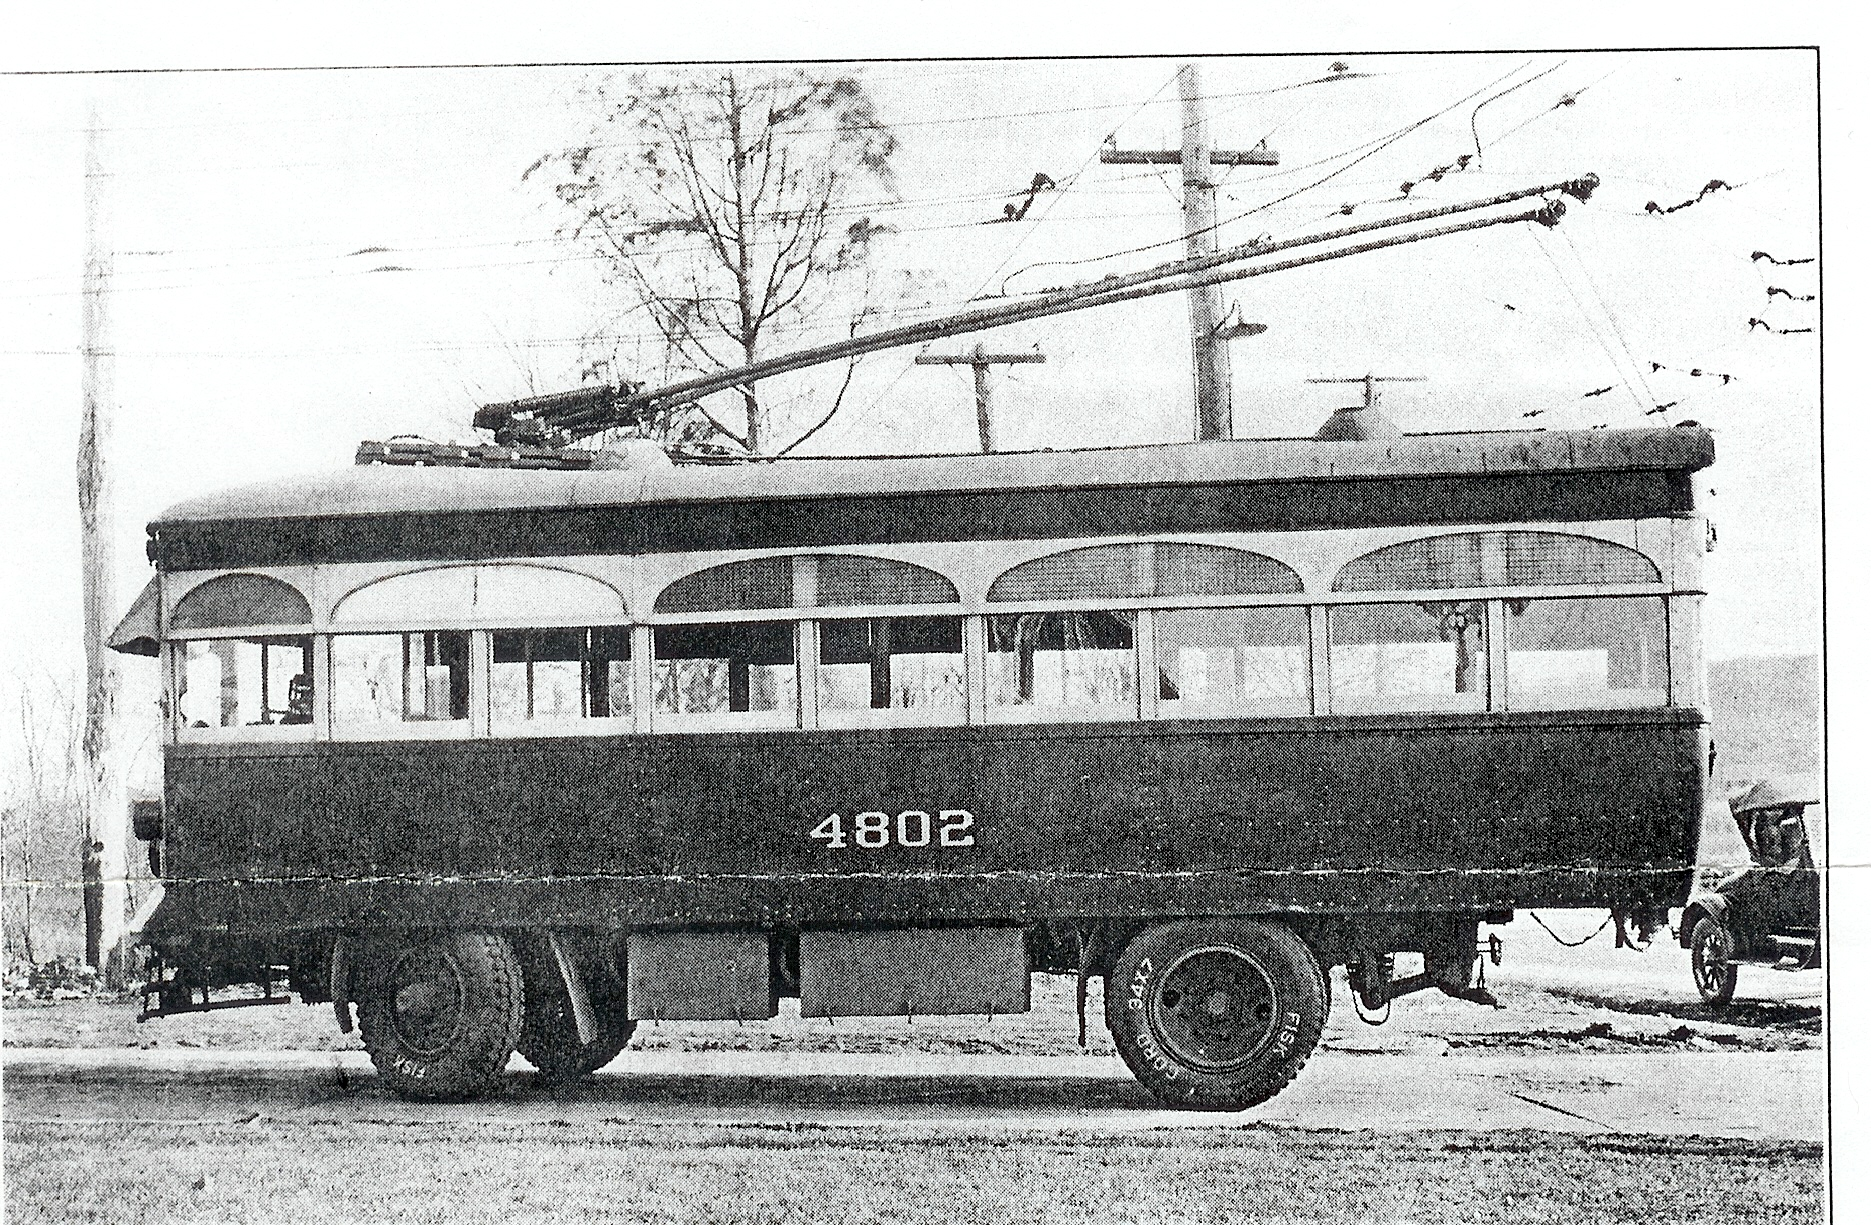 Trackless Trolley 4802, Year 1922 Image Credit: Maryland Rail Heritage Library  Marking Baltimore's first foray into trackless trolley operation (electric vehicles running via twin trolley poles and overhead current but using rubber tired instead of steel wheels and rails), No. 4802 was one of three such vehicles built by Brill for the United. No. 4802 and her sisters were to see service on only one route, on Liberty Road from Gywnn Oak Junction to Randallstown, starting in 1922. Real estate developers had hoped for a streetcar line to serve this growing suburb, but the United felt the expense not justified due to light ridership. Service by trackless trolley was the compromise. After ten years of operation, these vehicles, which seated 22 passengers, were supplanted by buses in July 1932, marking the first time internal combustion engines had replaced electricity as a means of power on the Baltimore system.